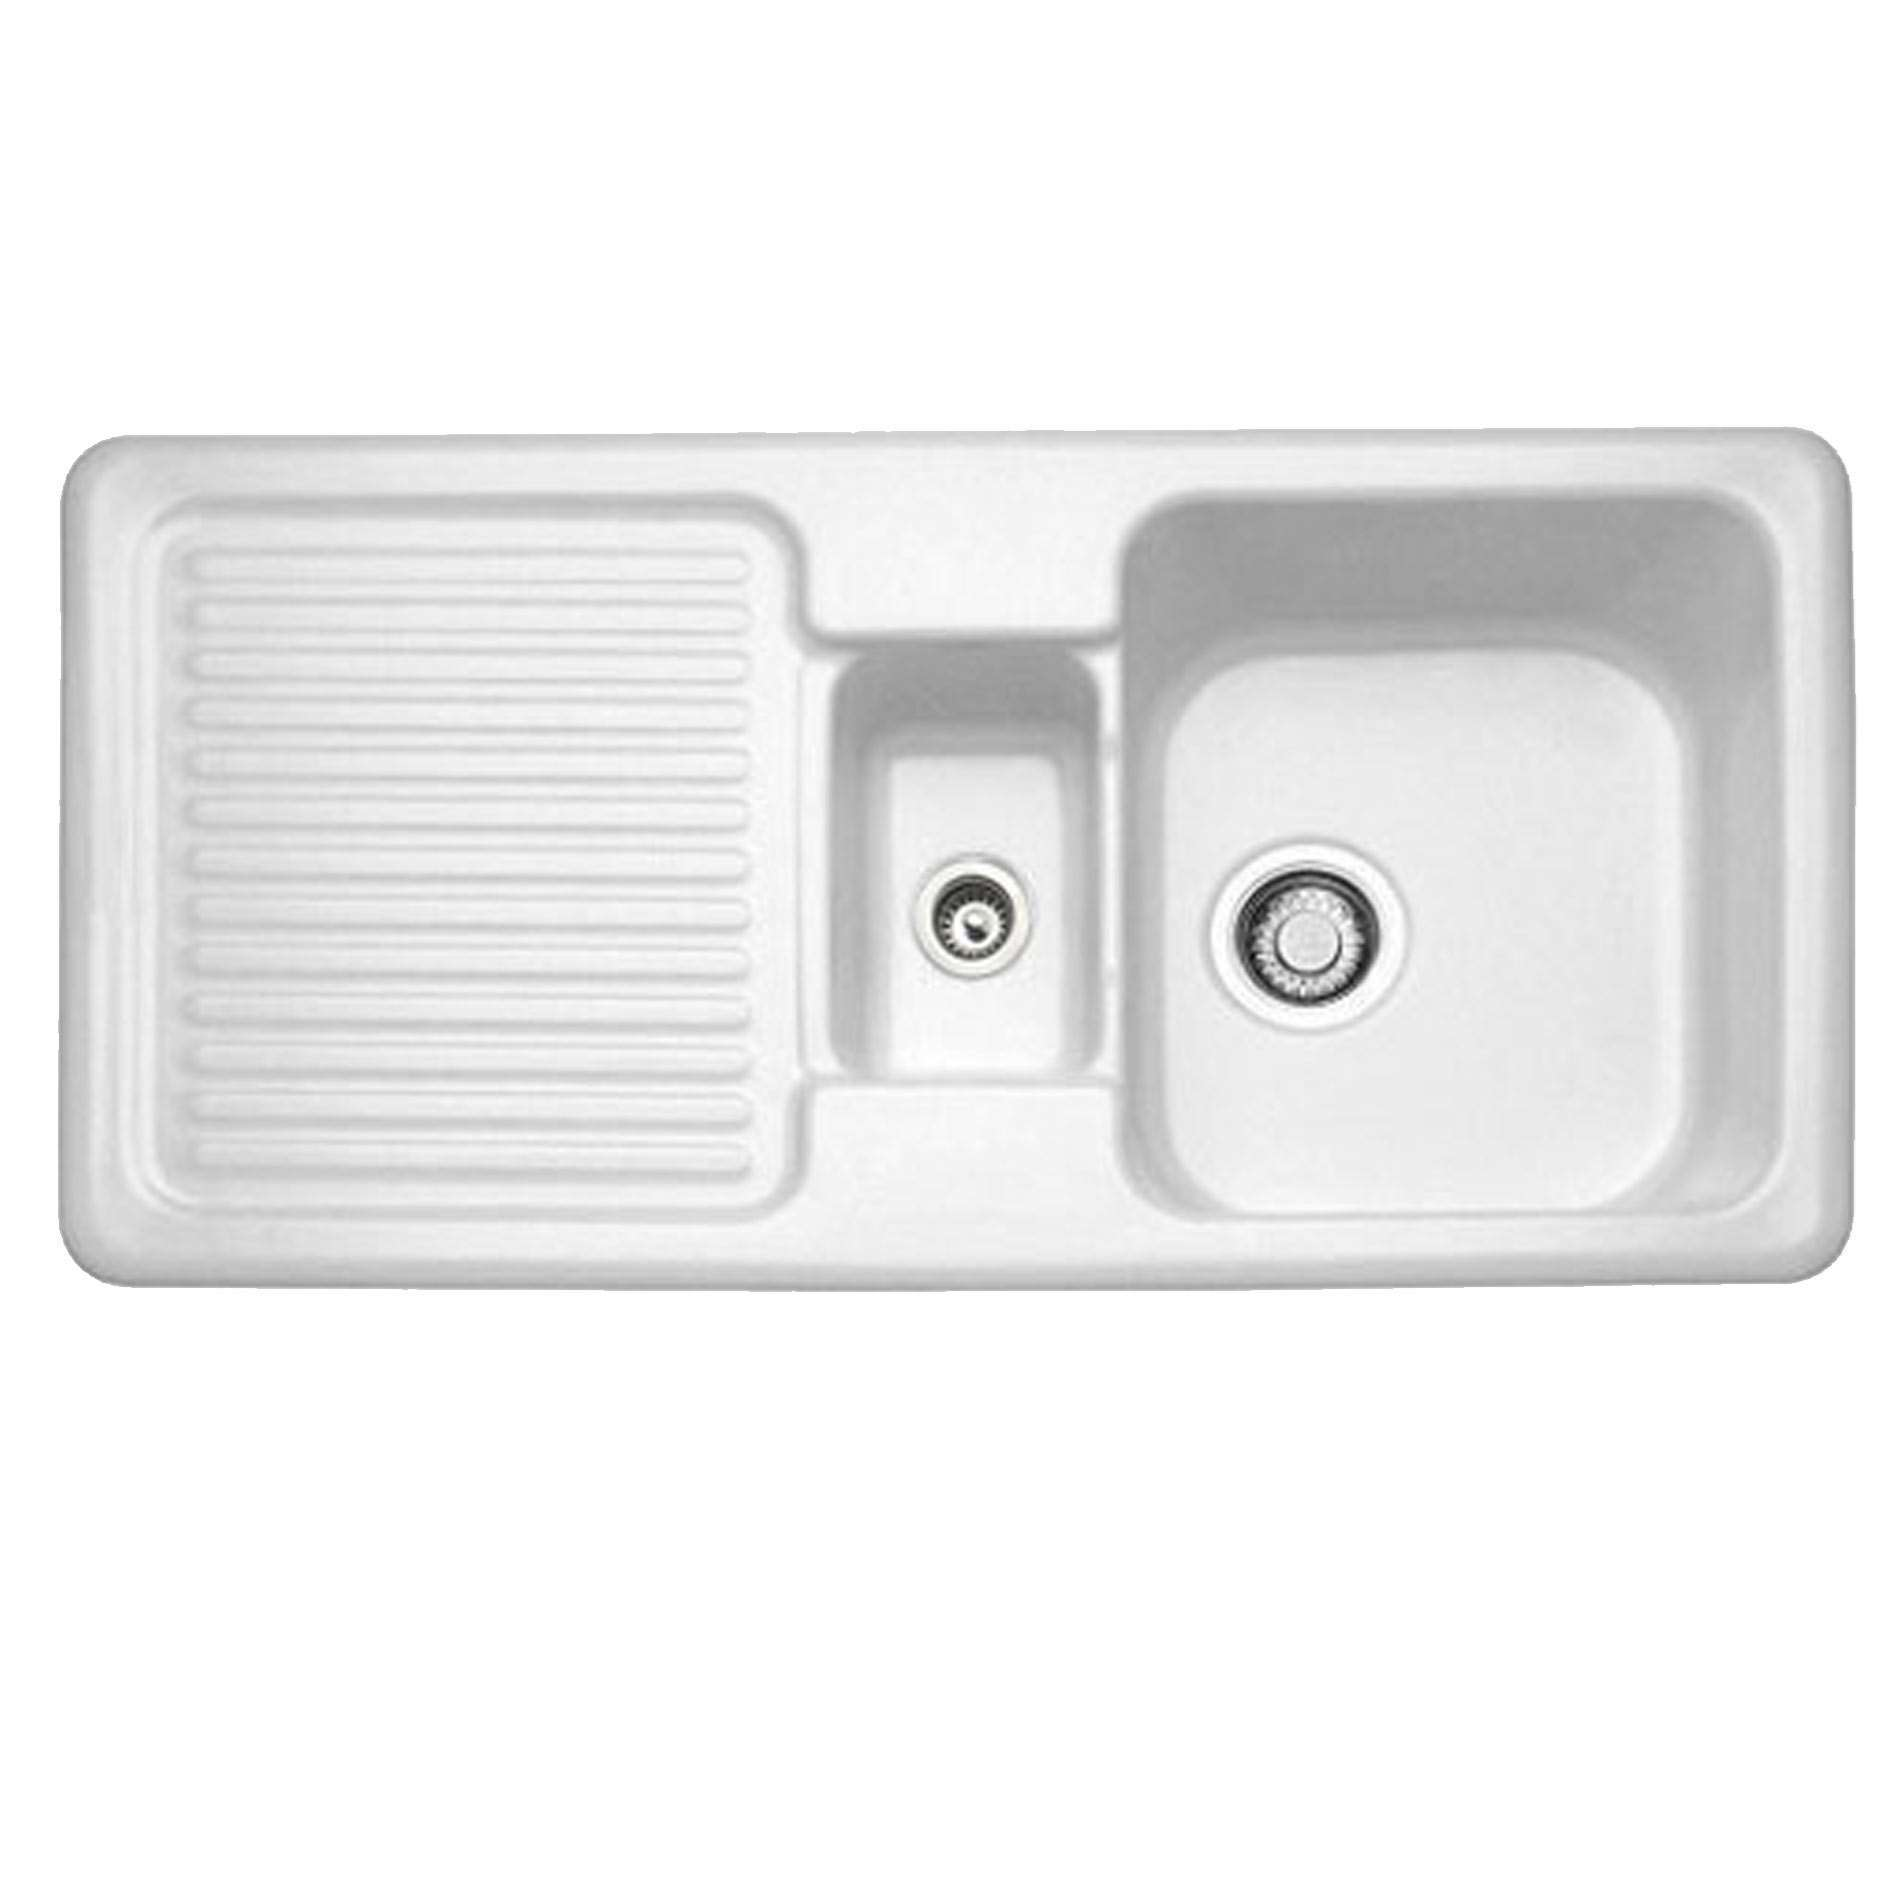 Villeroy & Boch: Condor 60 Ceramic Sink - Kitchen Sinks & Taps